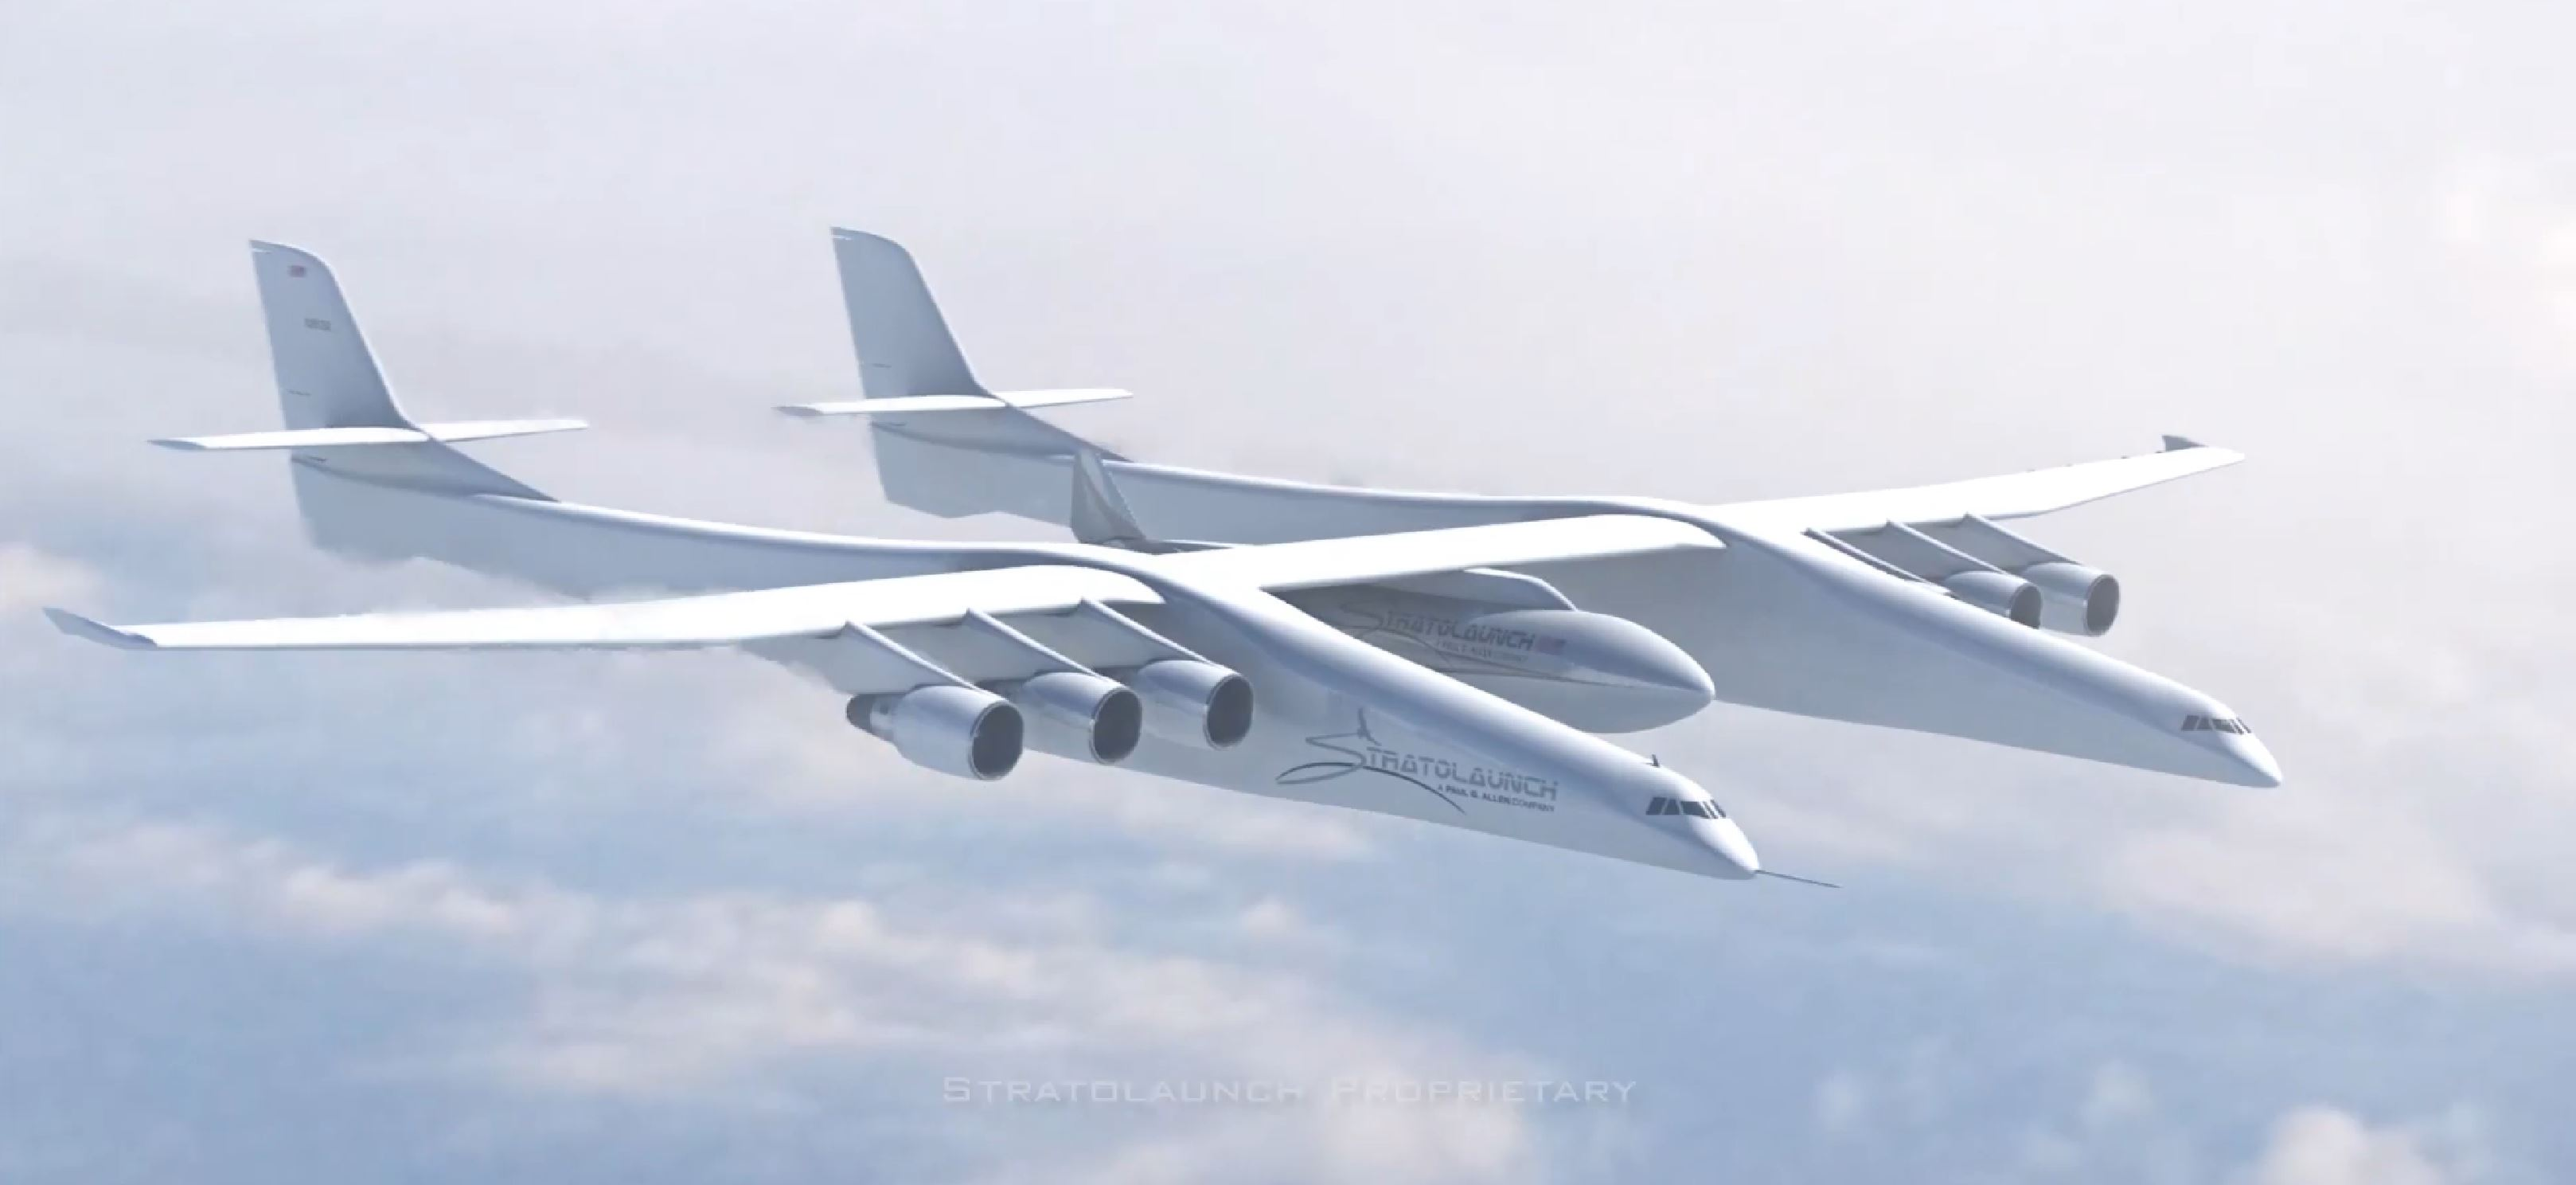 Roc and rocket (Stratolaunch) 8